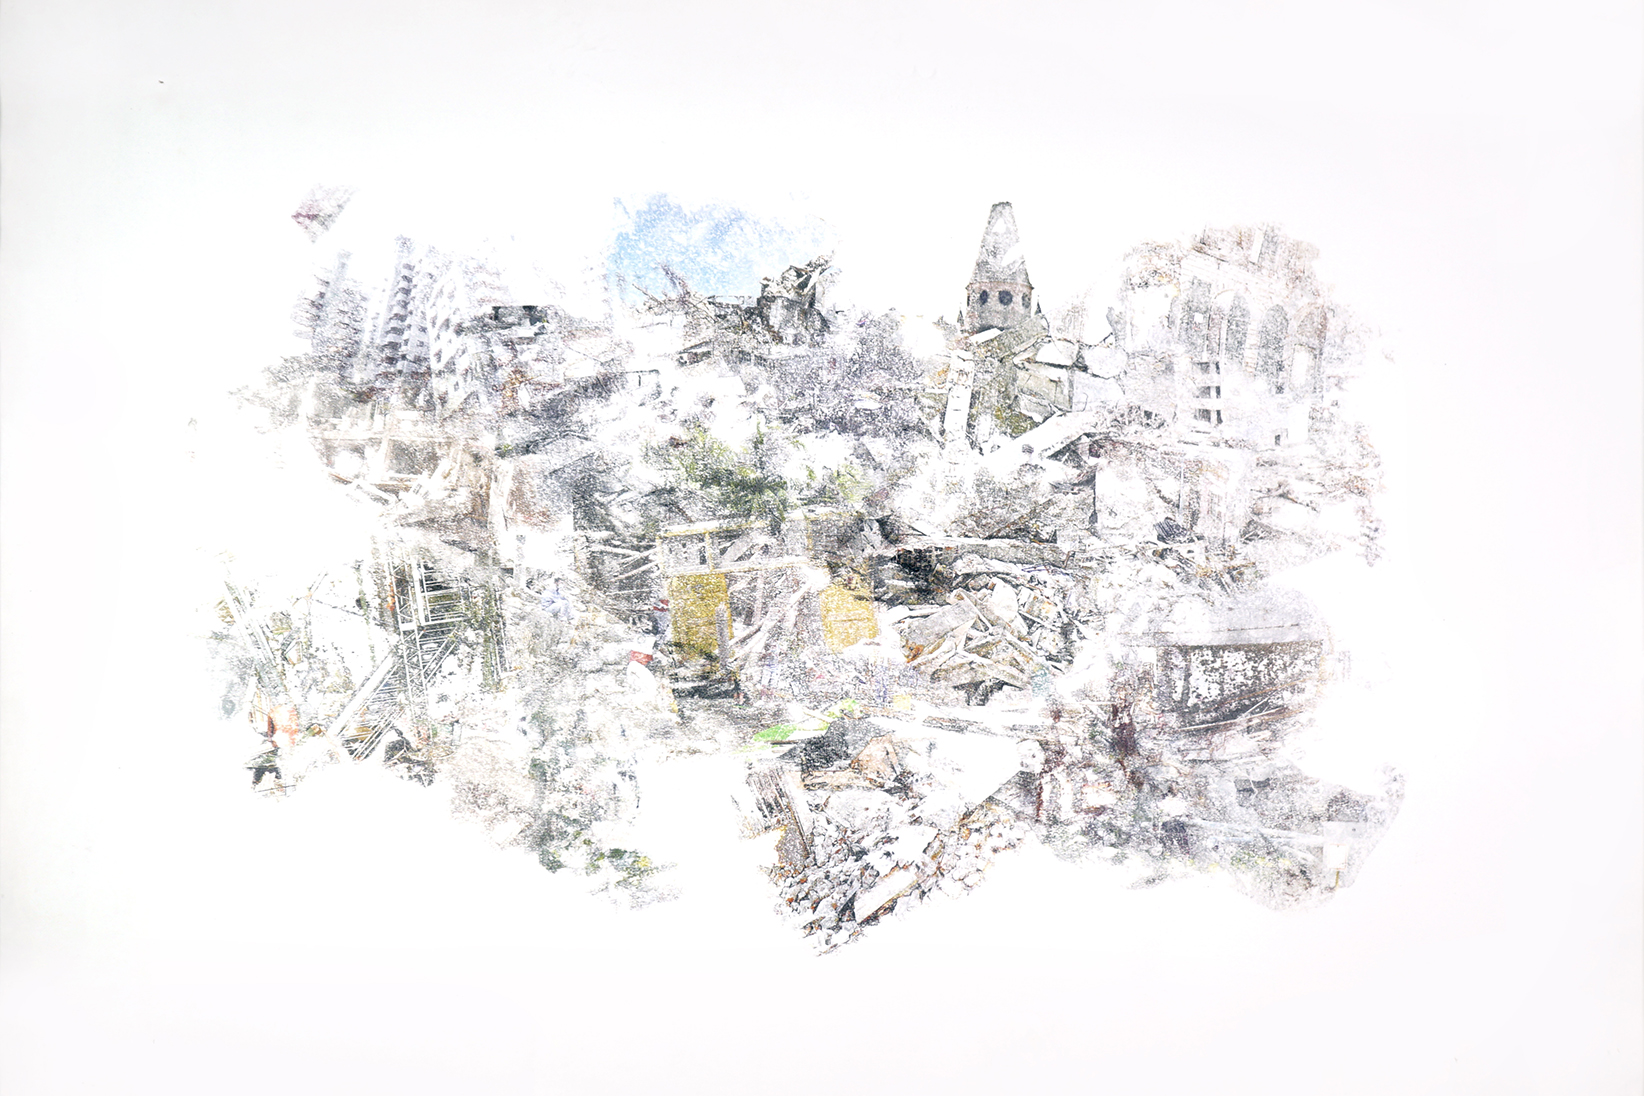 urban equalization #001 - 70x100cm without frame